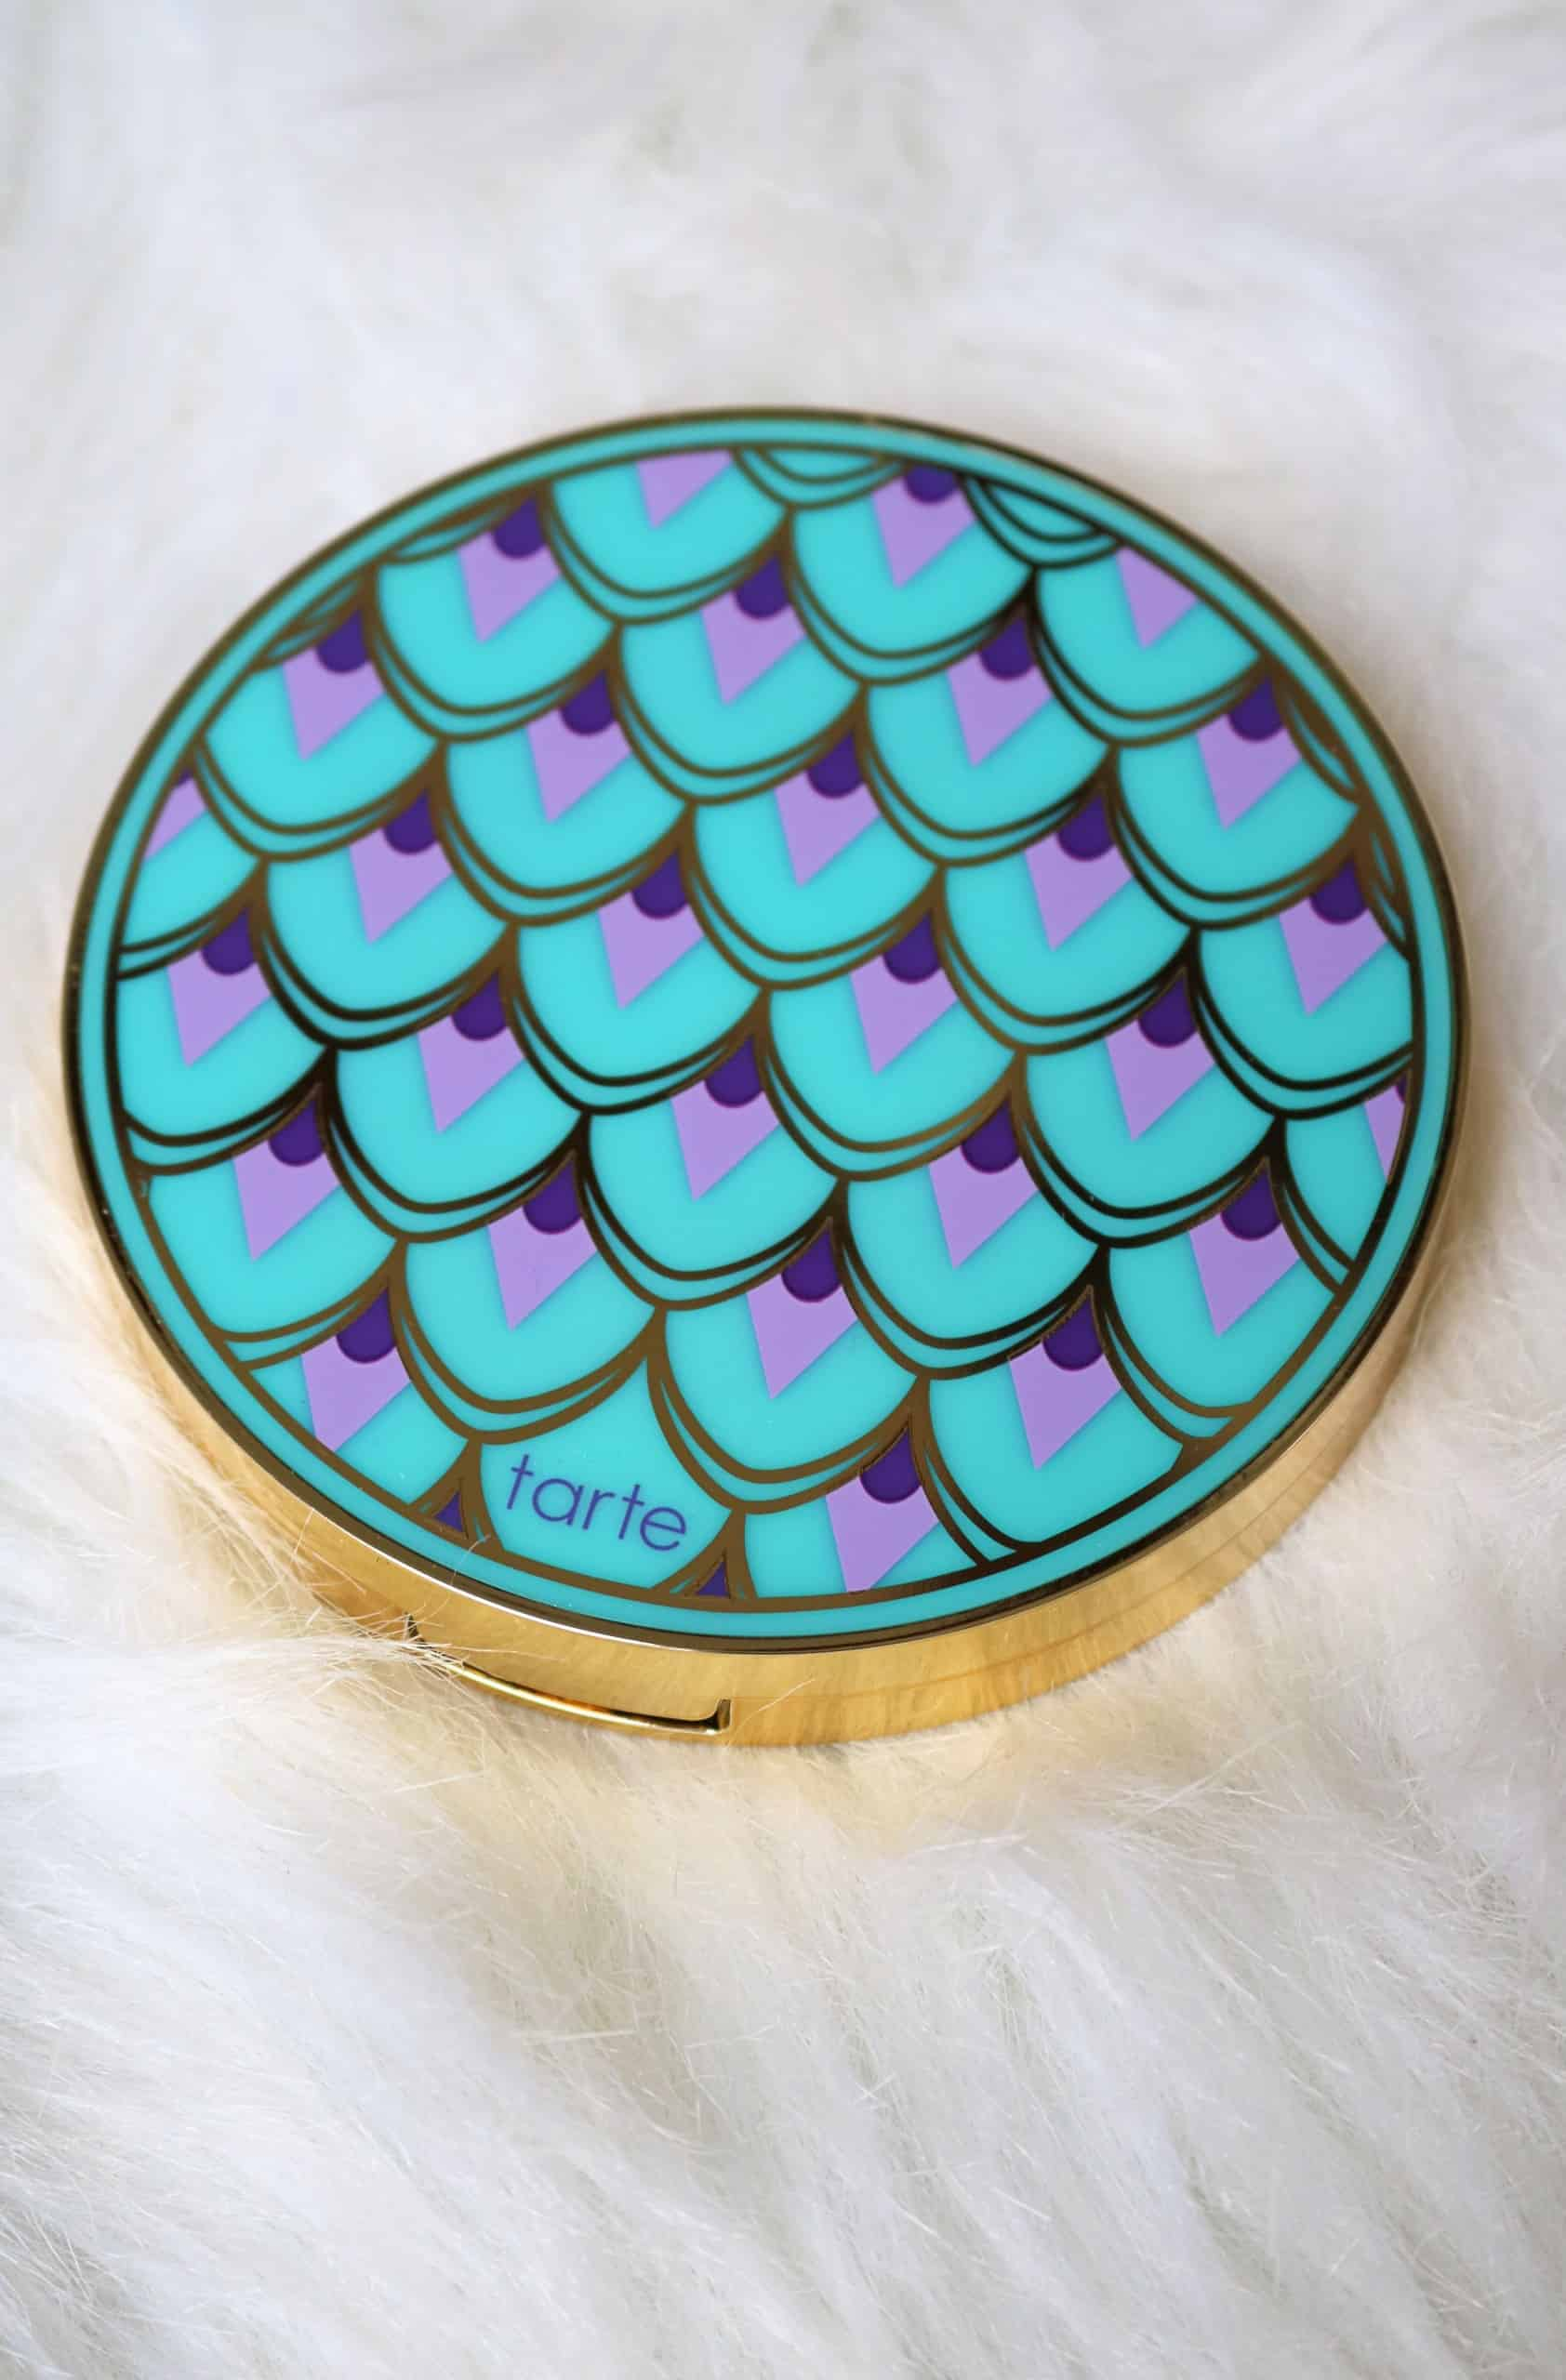 Check out my review of the beautiful Tarte Rainforest of the Sea Palette Volume III with swatches of all 8 gorgeous eyeshadow shades! This affordable Tarte eyeshadow palette has beautiful highlighting eyeshadow shades that add the perfect pop of shimmer to the eyelid. #tarte #eyeshadowpalette #makeupreview #affordablemakeup